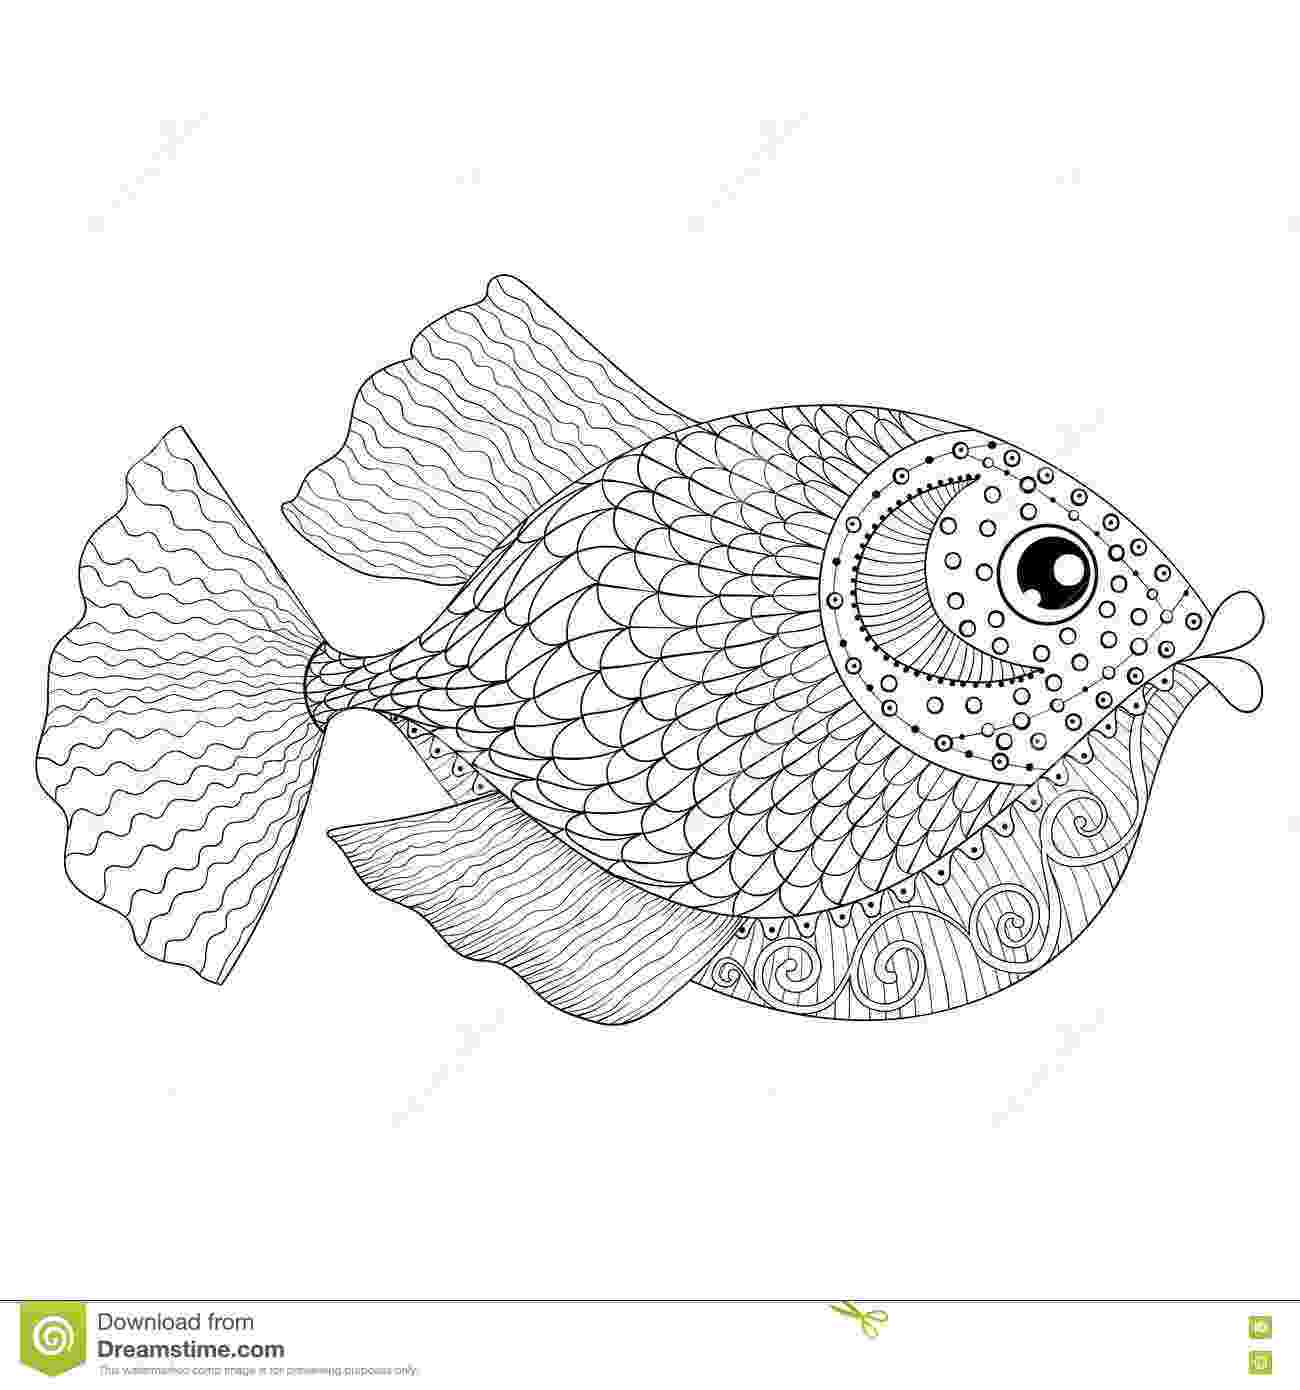 anti stress coloring book animals zentangle animal stock images royalty free images coloring stress animals anti book